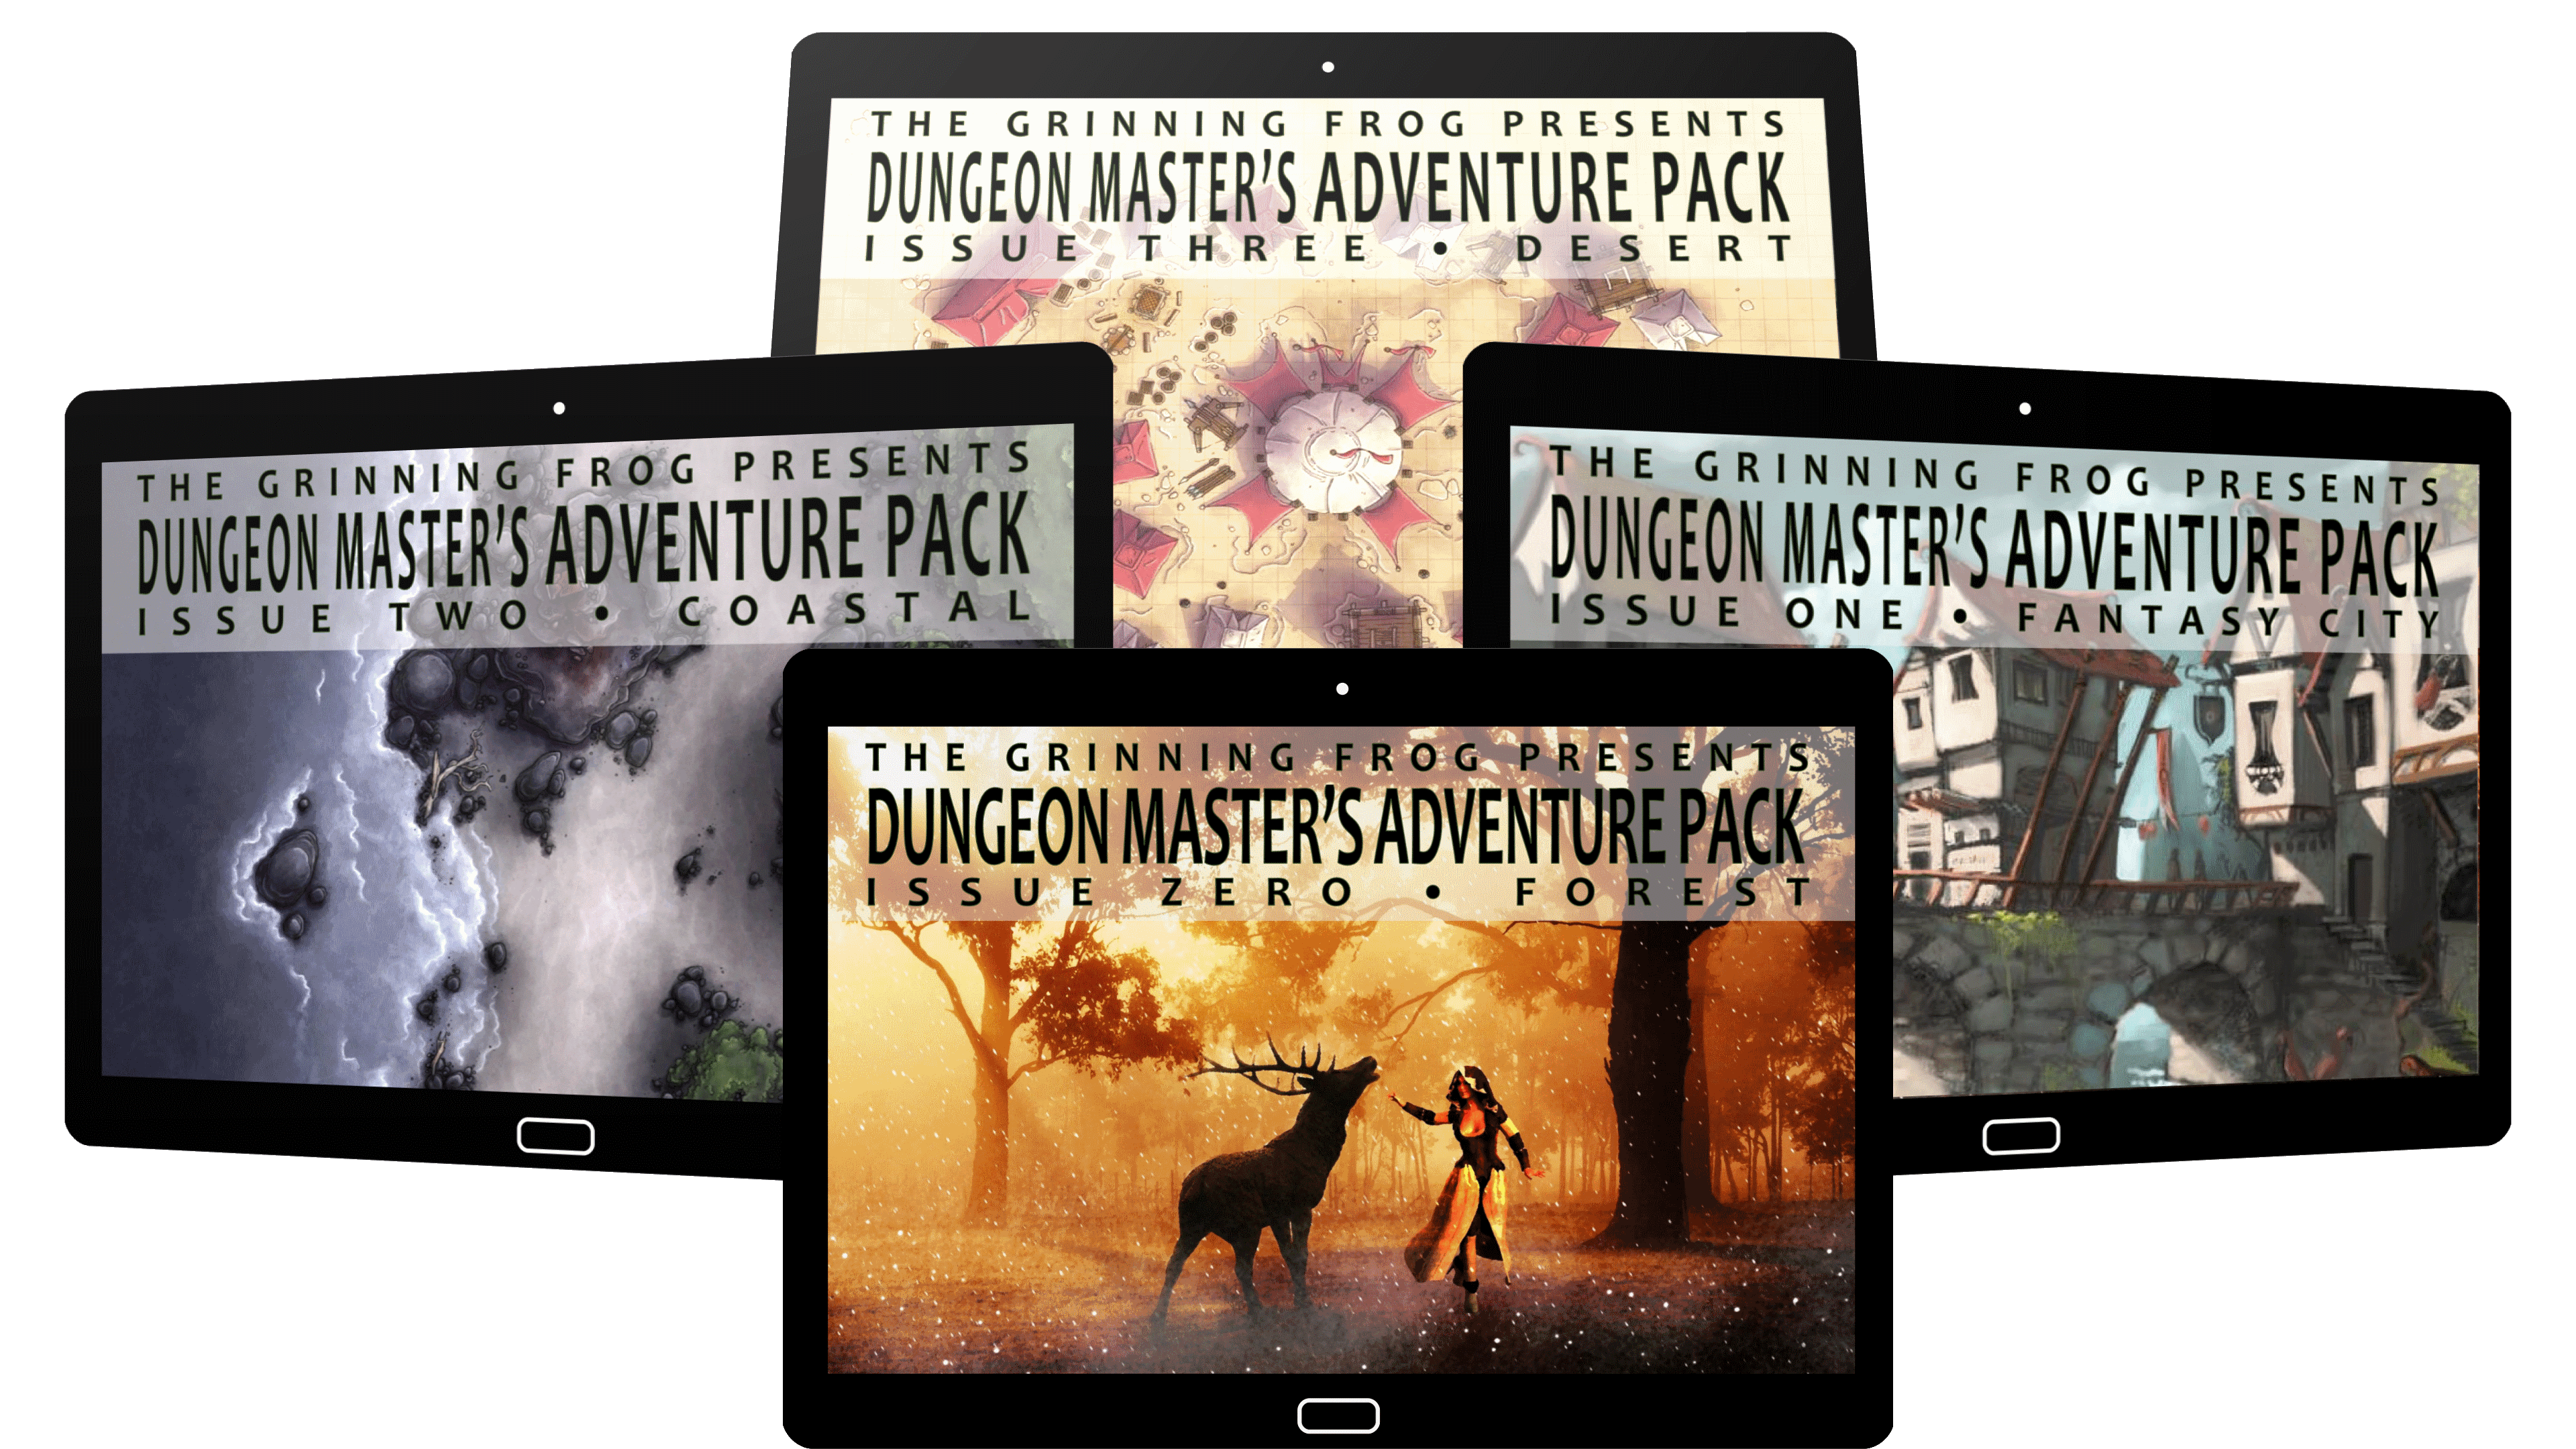 Dungeon Master's adventure pack